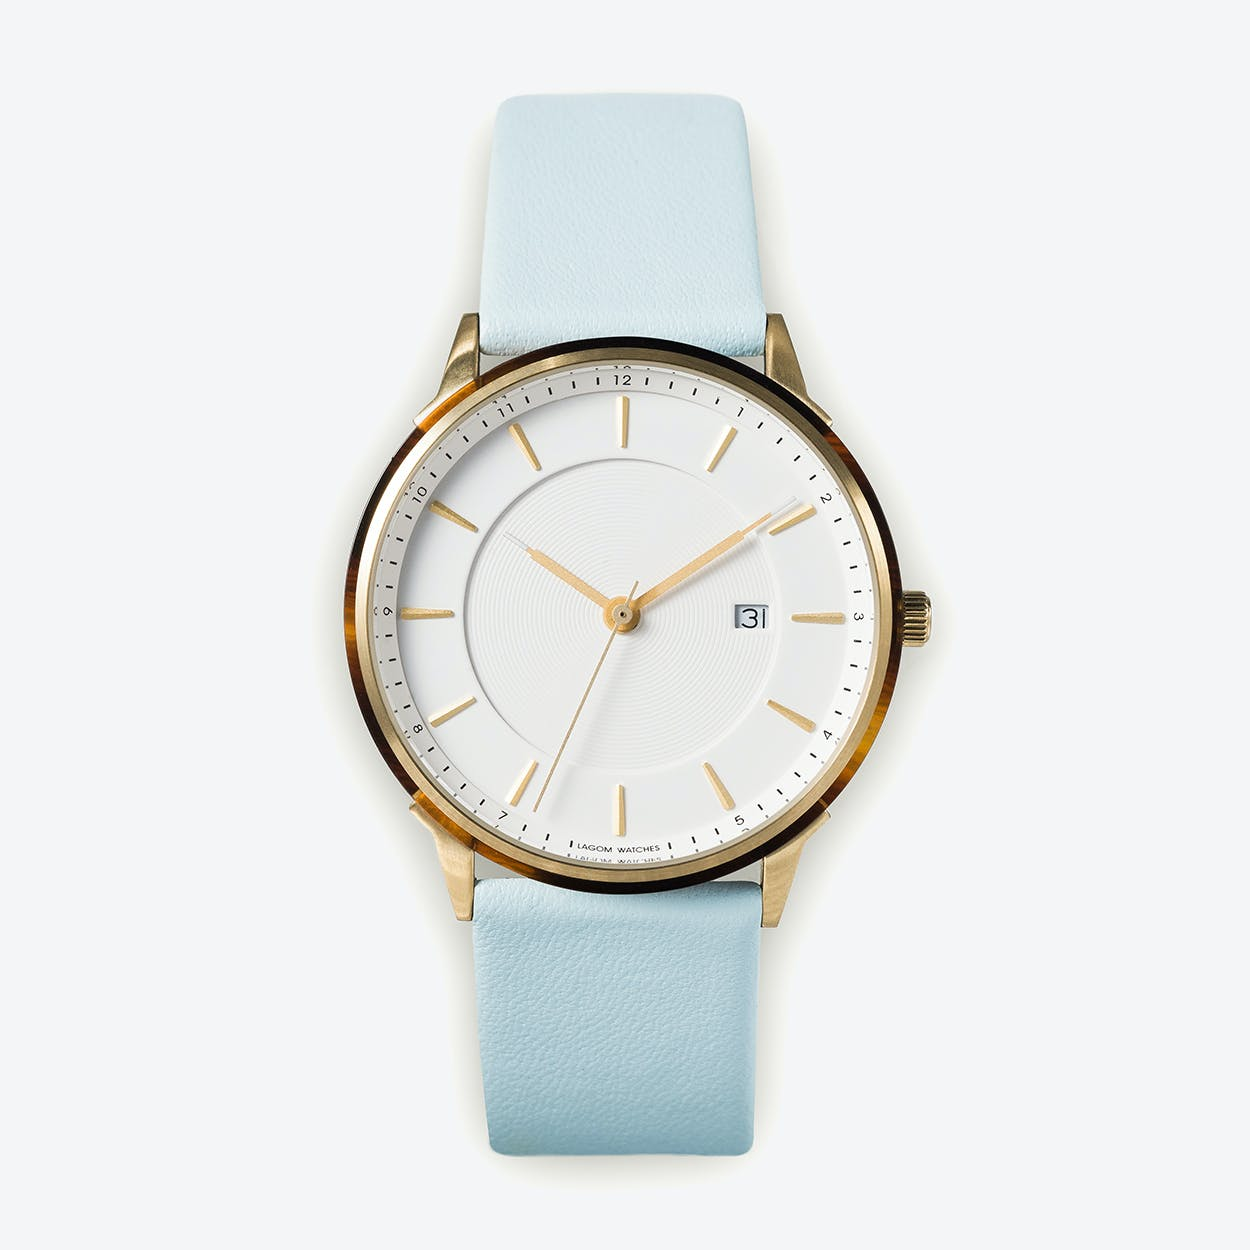 BÖRJA - Gold Watch in Offwhite Face and Pale Blue Leather Stripe